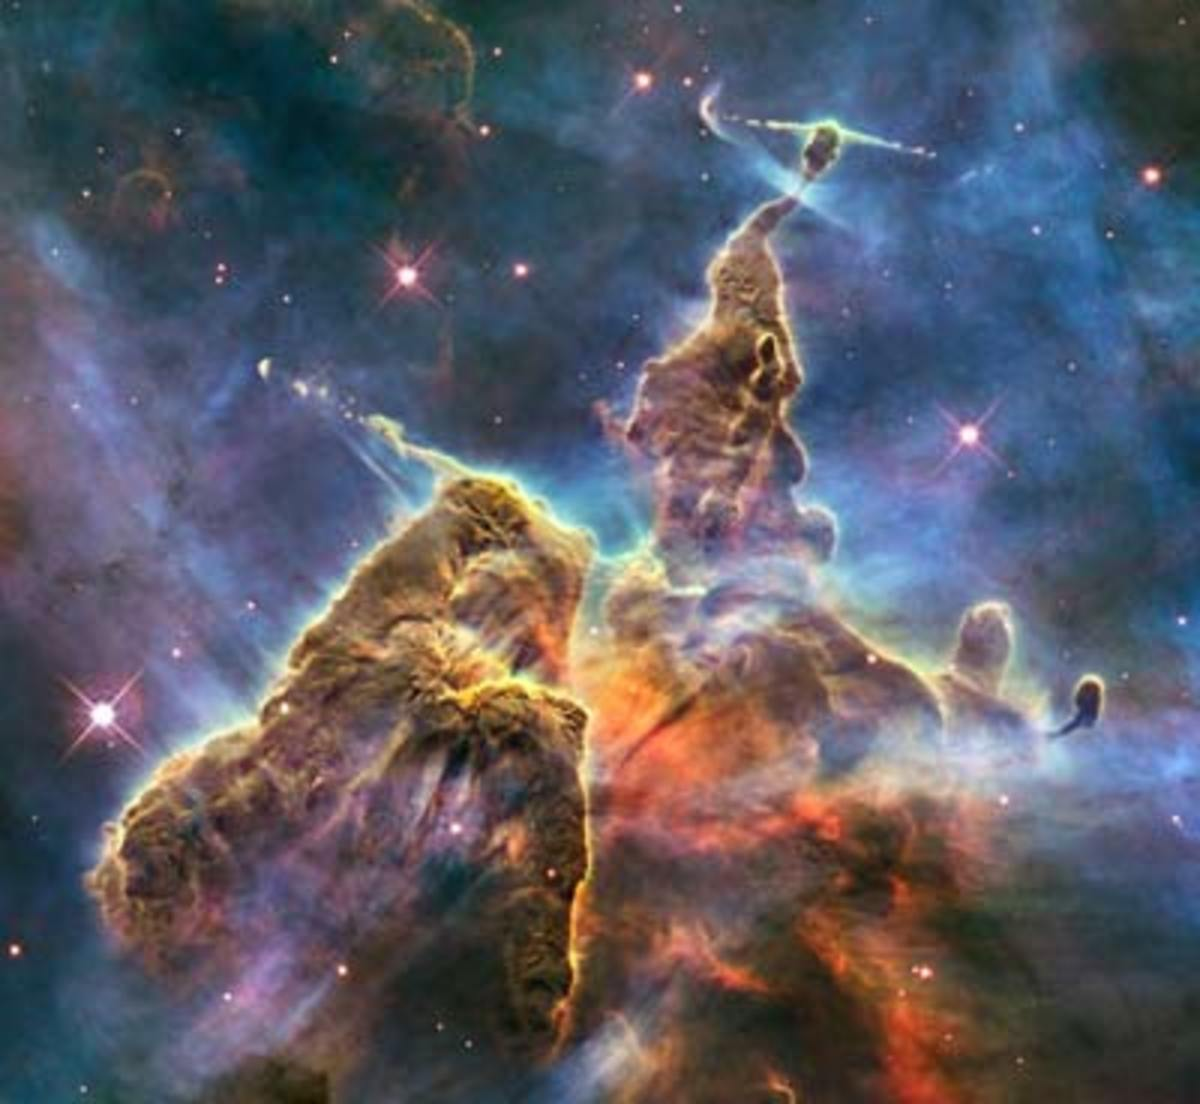 A region of the Carina Nebula, called Mystic Mountain, in which stars are being formed.